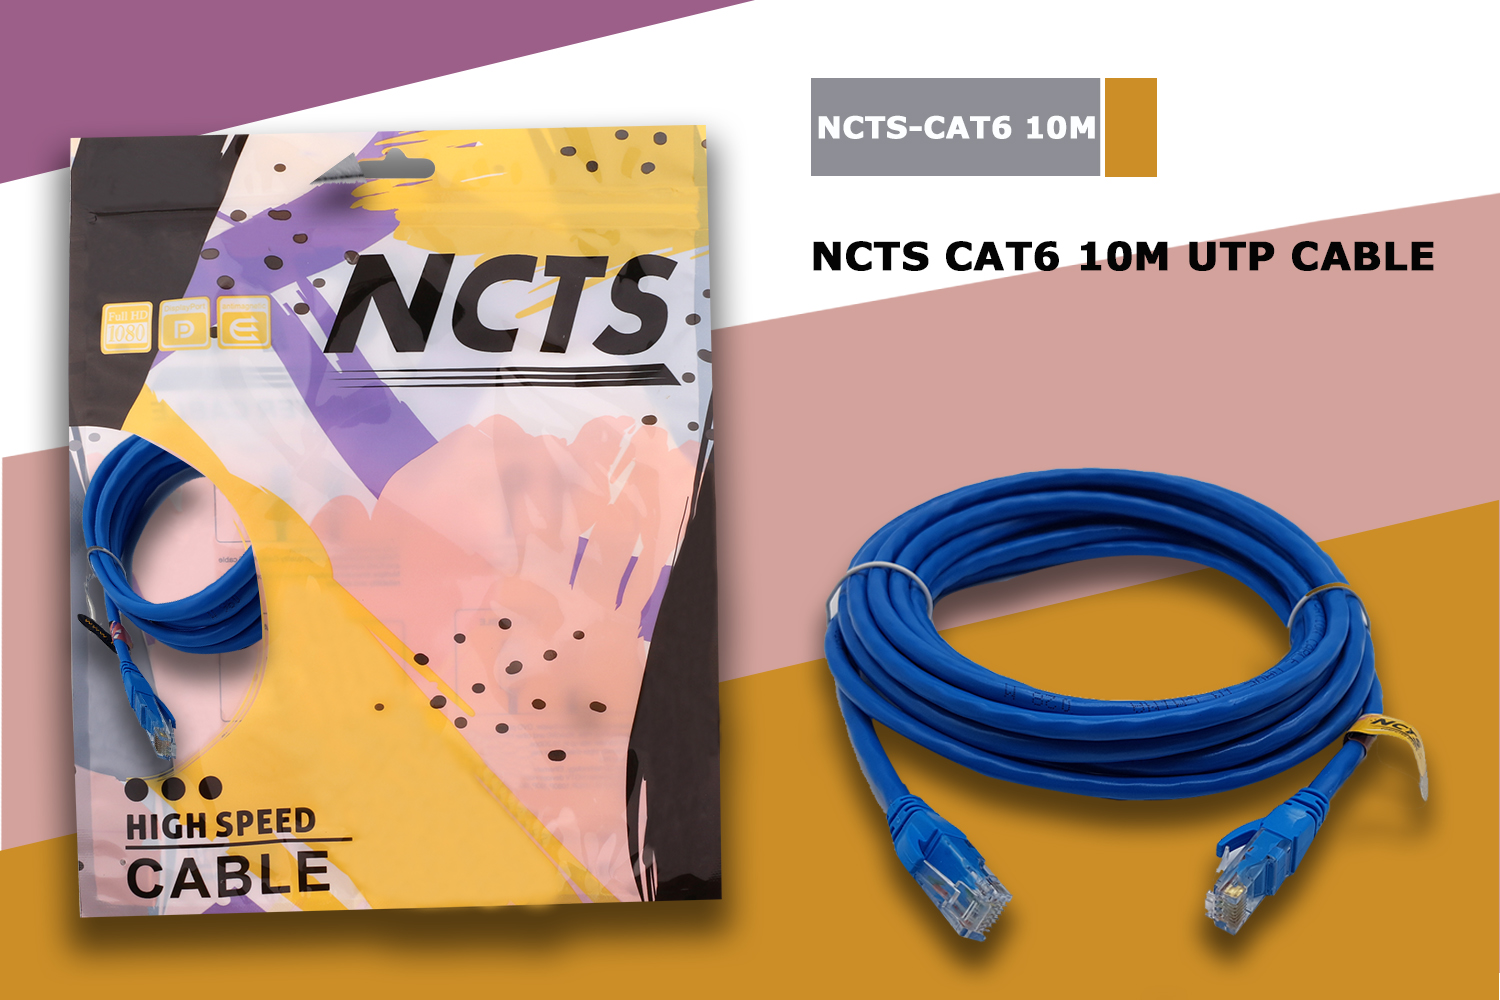 NCTS CAT6 10M UTP CABLE